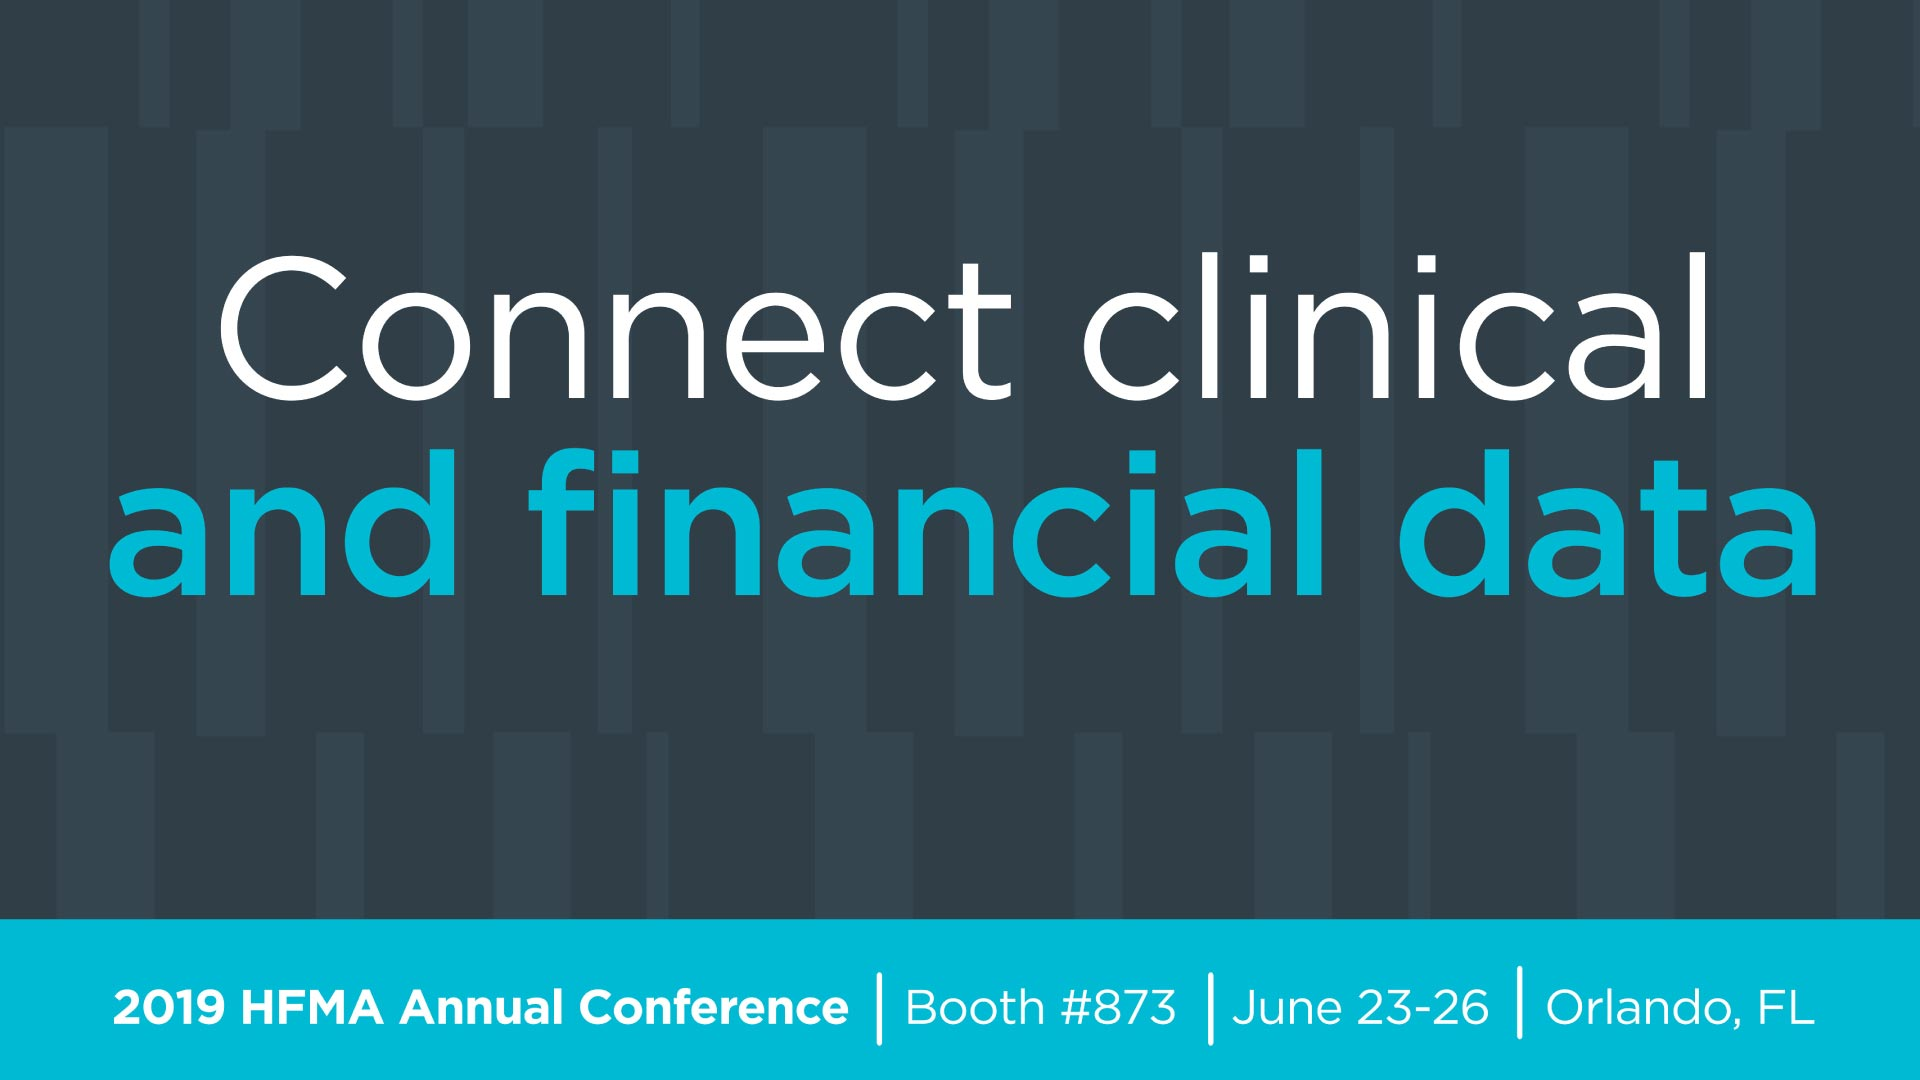 HFMA conference logo_Connect clinical and financial data